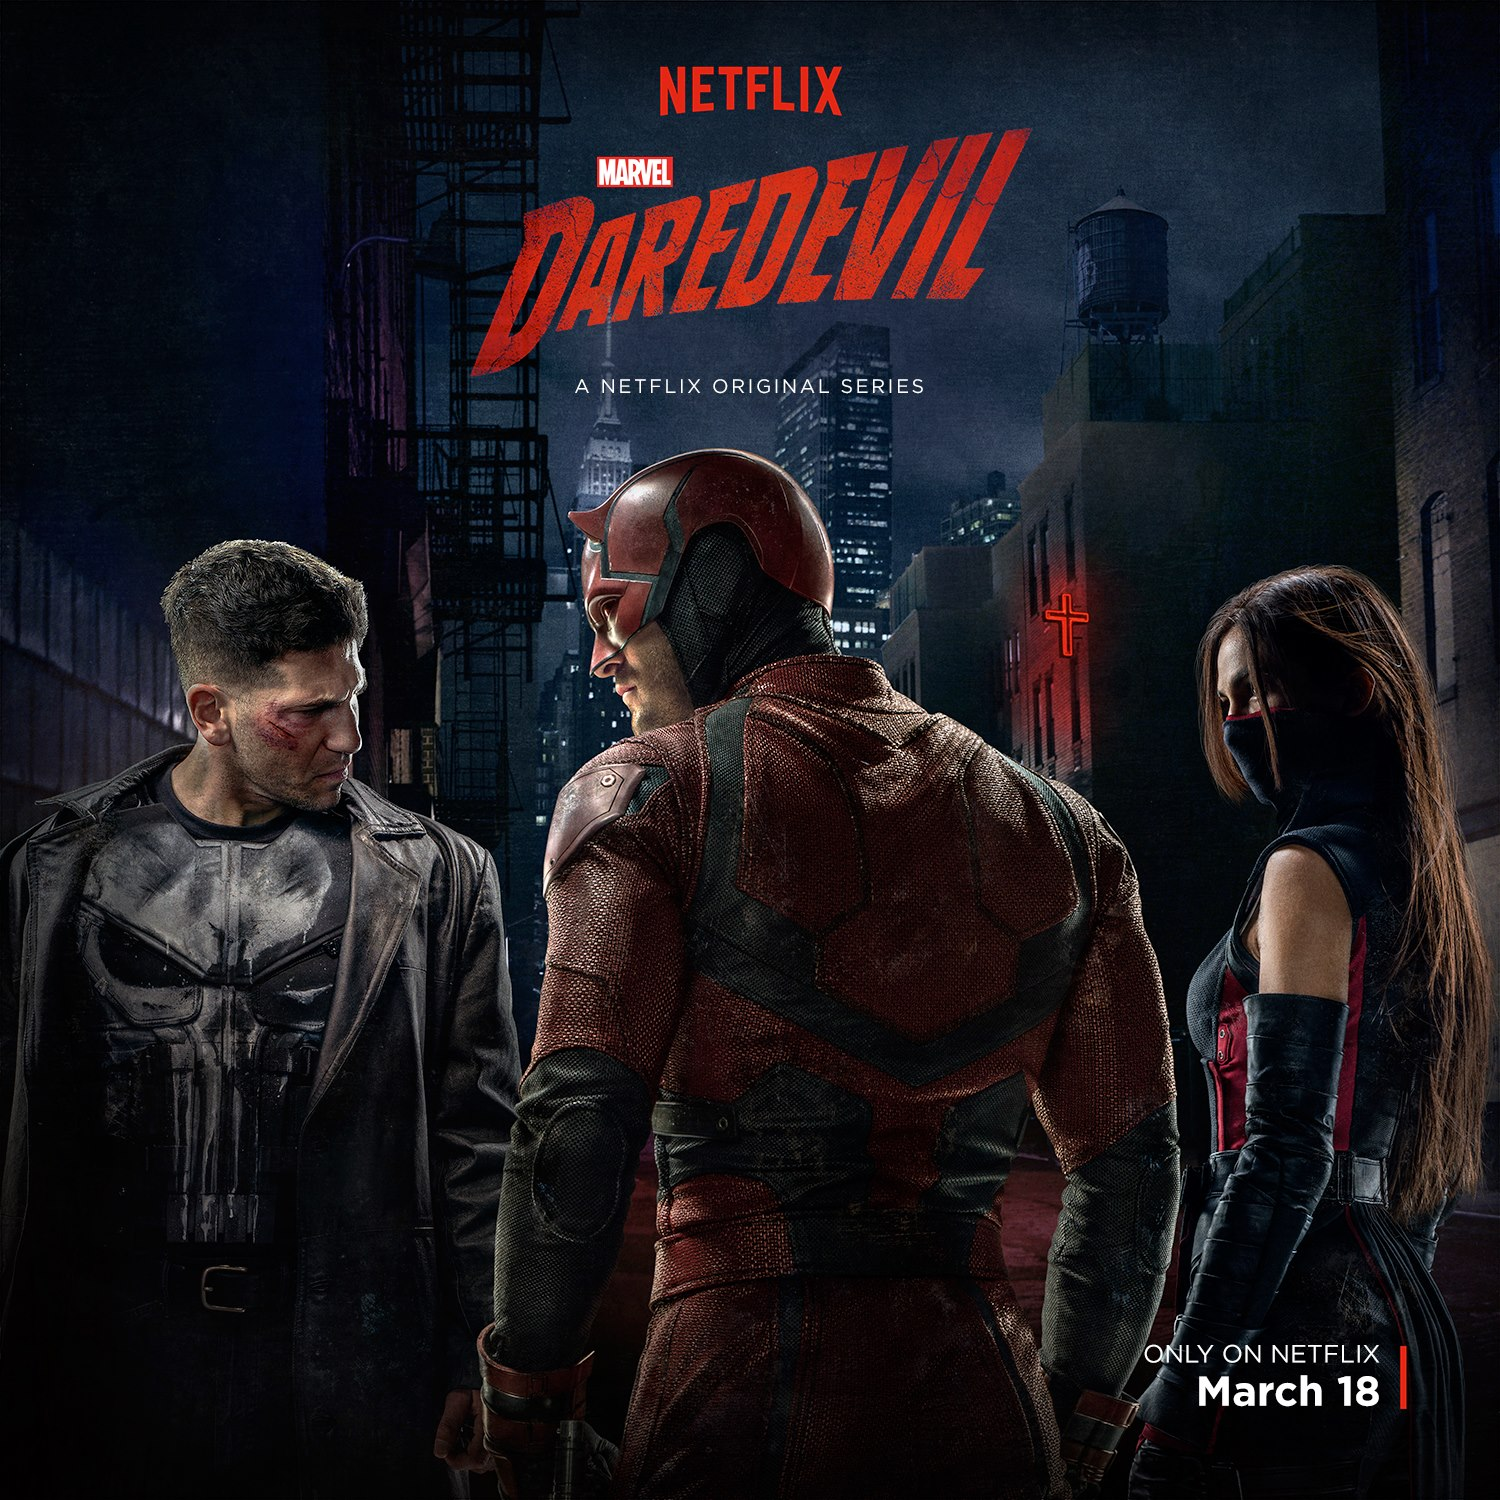 Daredevil Season 2 review: Hell's Kitchen Nightmares